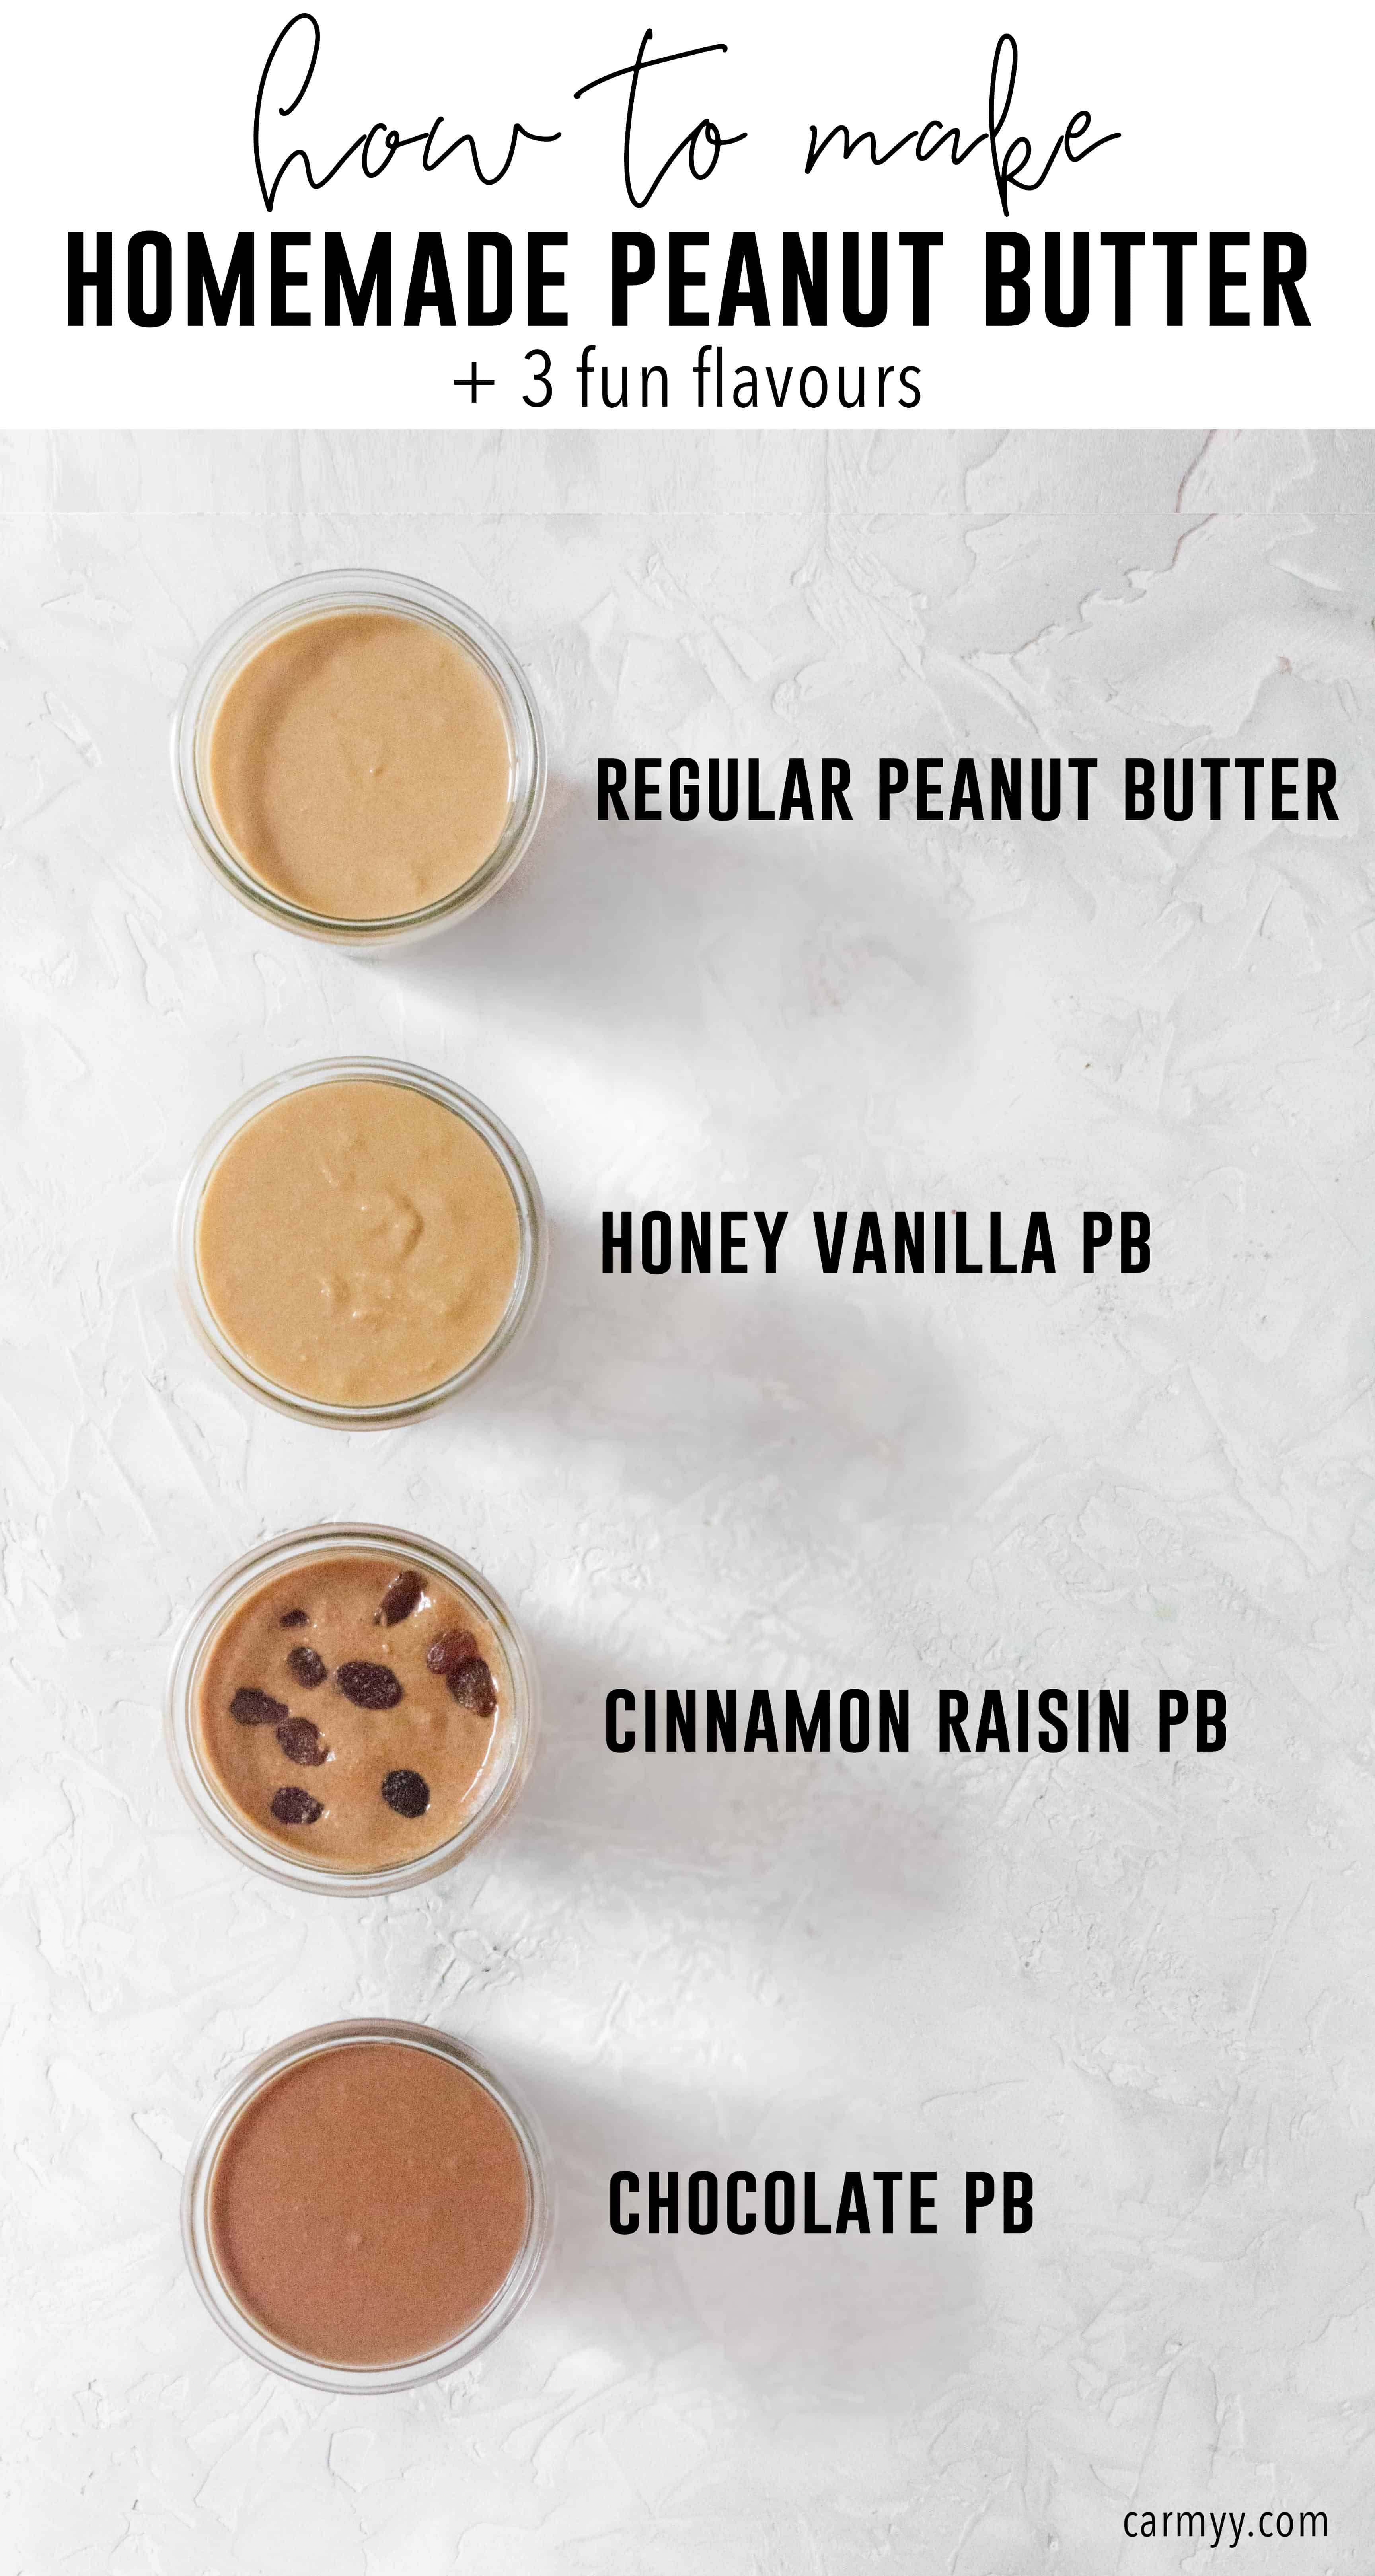 Have you ever made Homemade Peanut Butter? Homemade Peanut Butter is so easy to make at home and is much cheaper and tastier than store bought! Here's how to make your own and 3 easy variations!